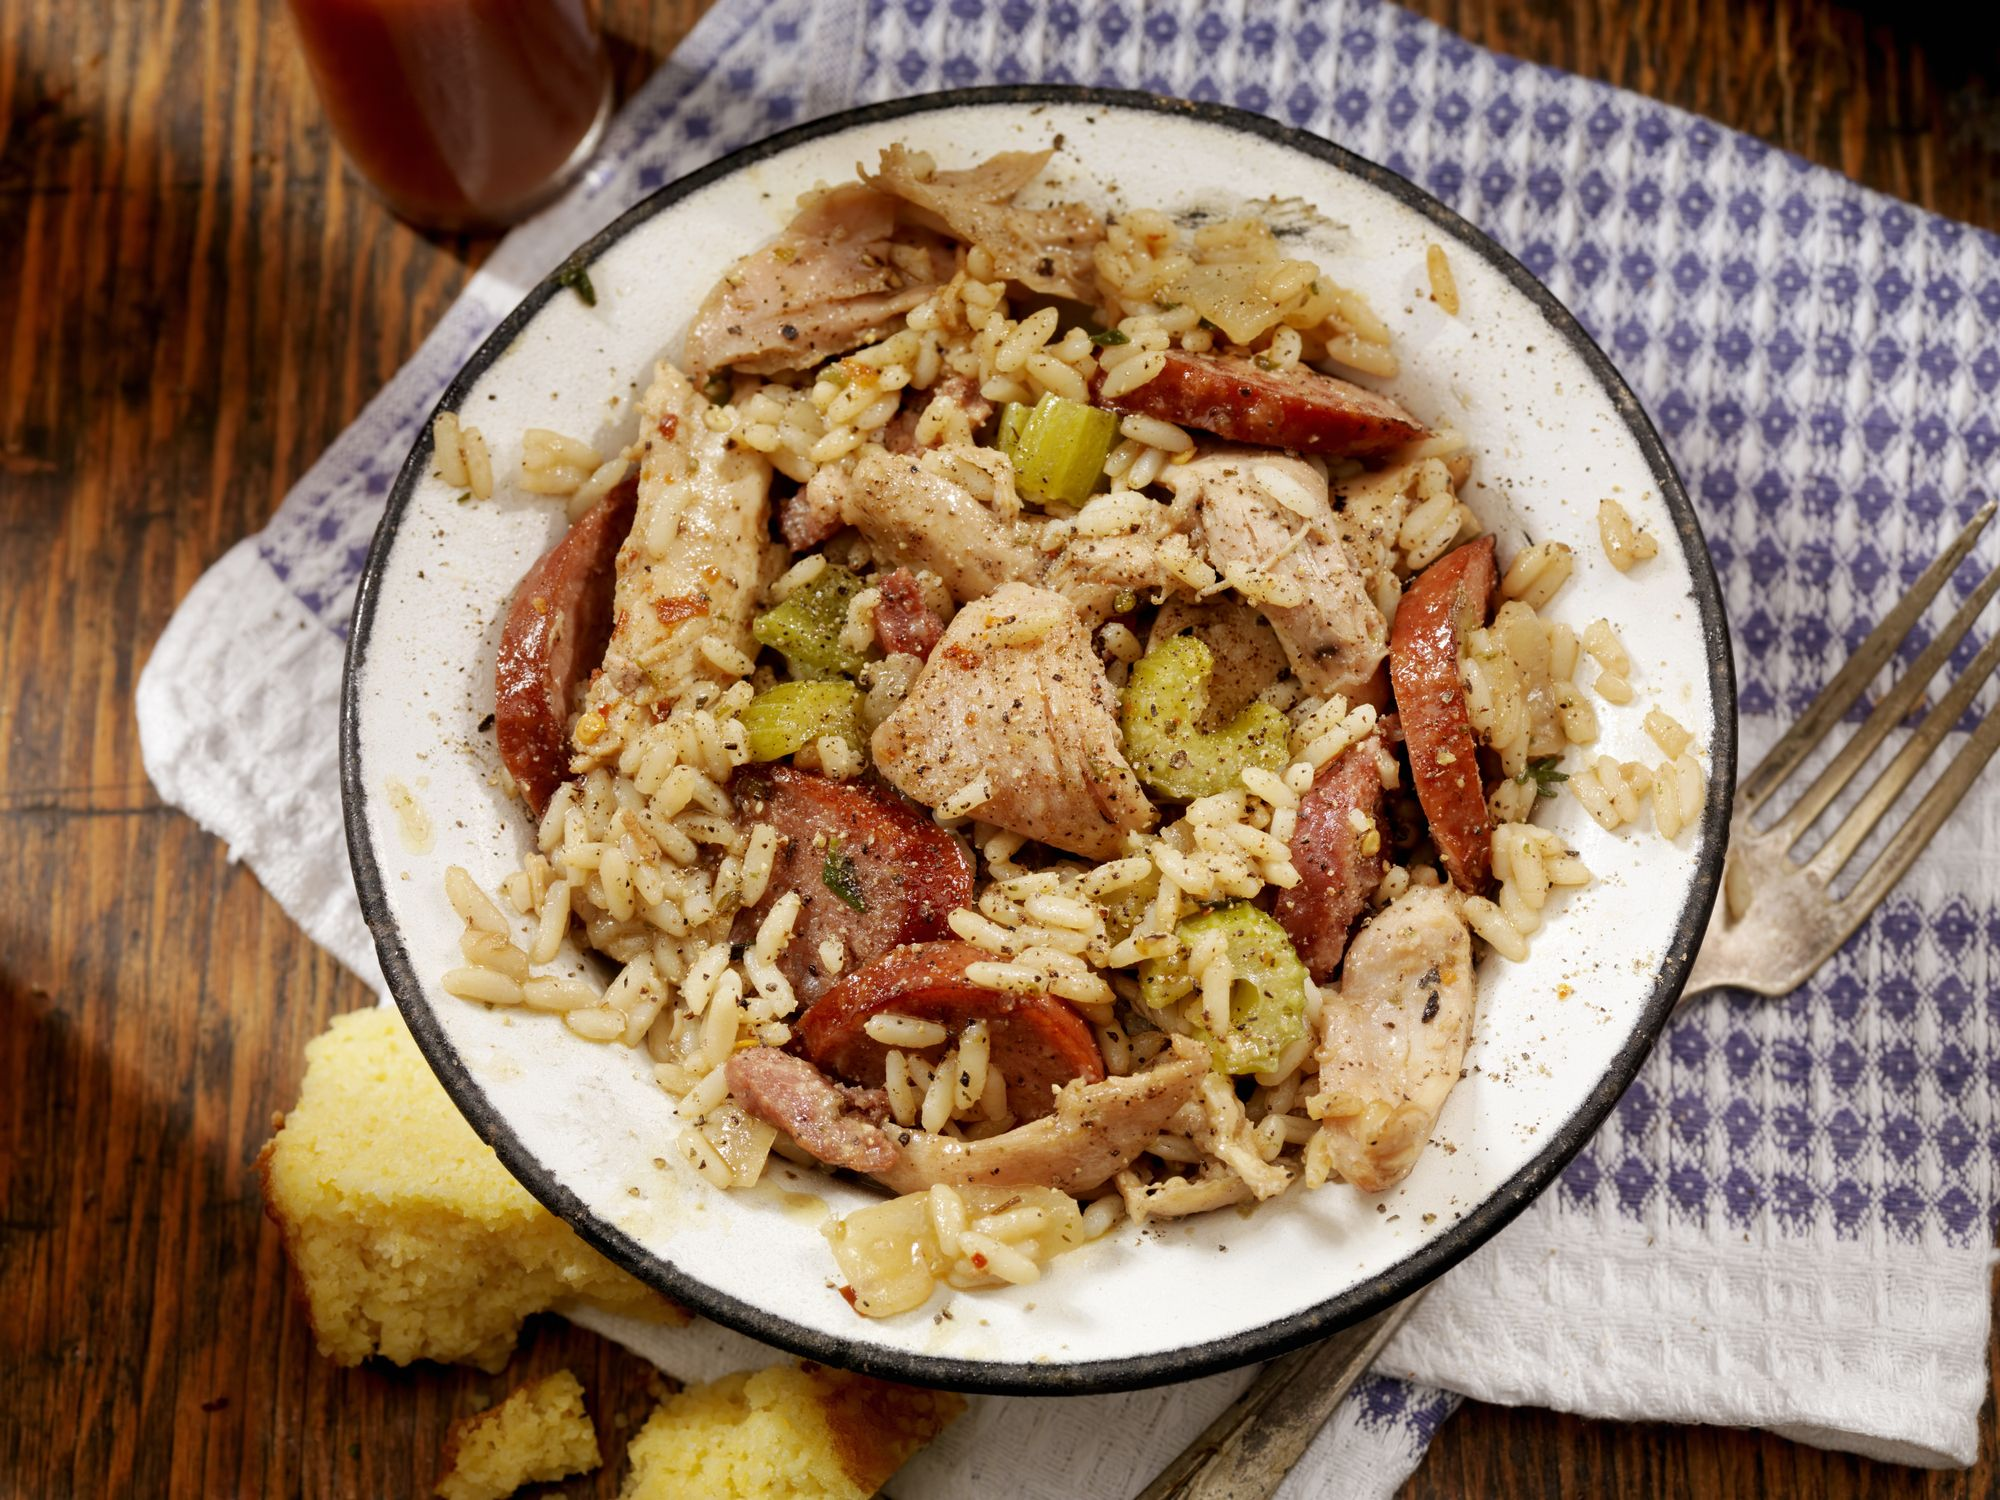 Gumbo vs. Jambalaya: What's the Real Difference?